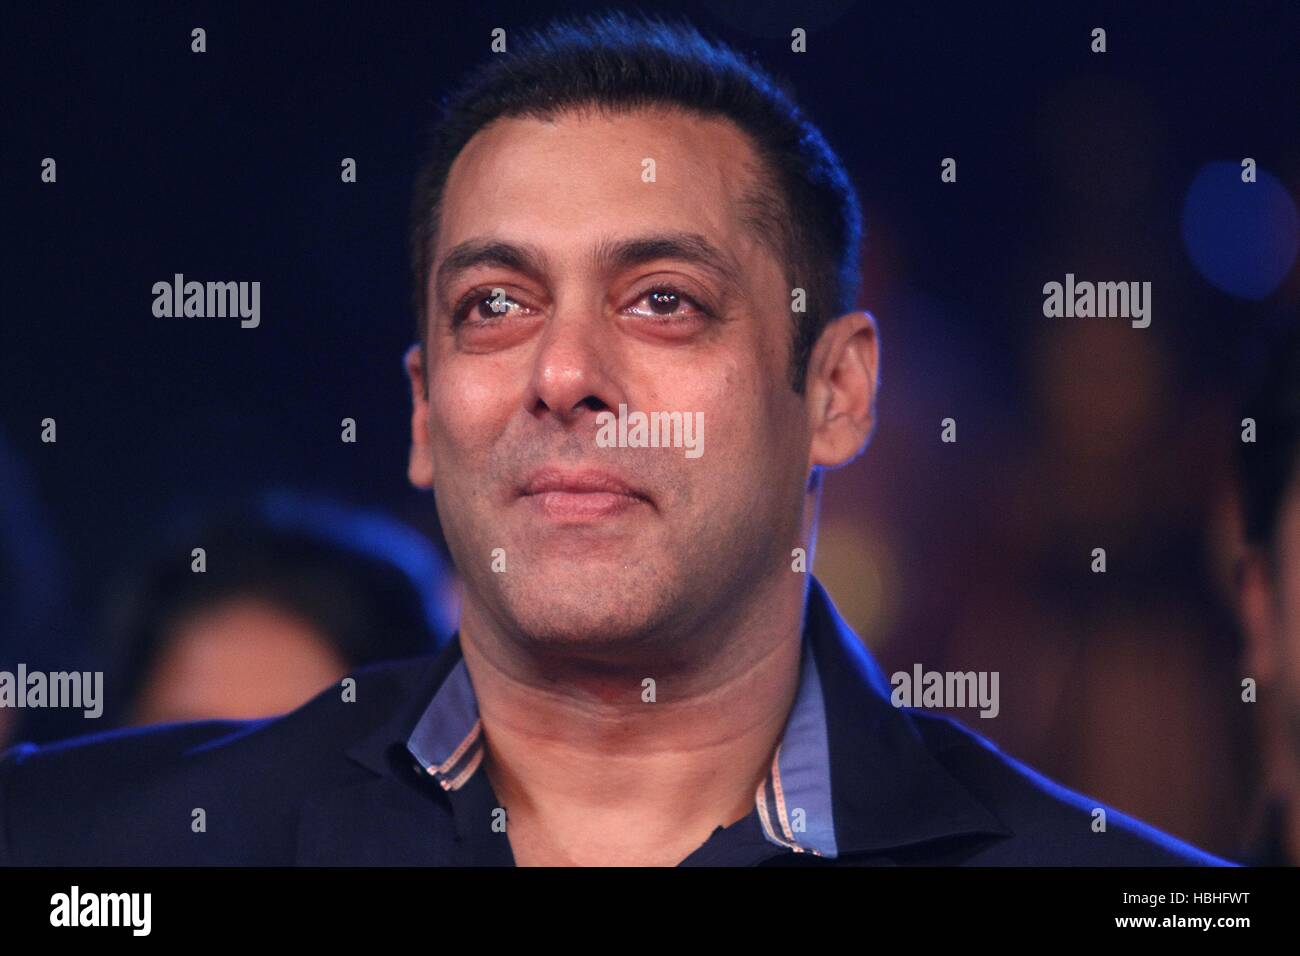 Actor de Bollywood Salman Khan durante la Lux Zee Cine Awards 2016, en Mumbai, India, Imagen De Stock